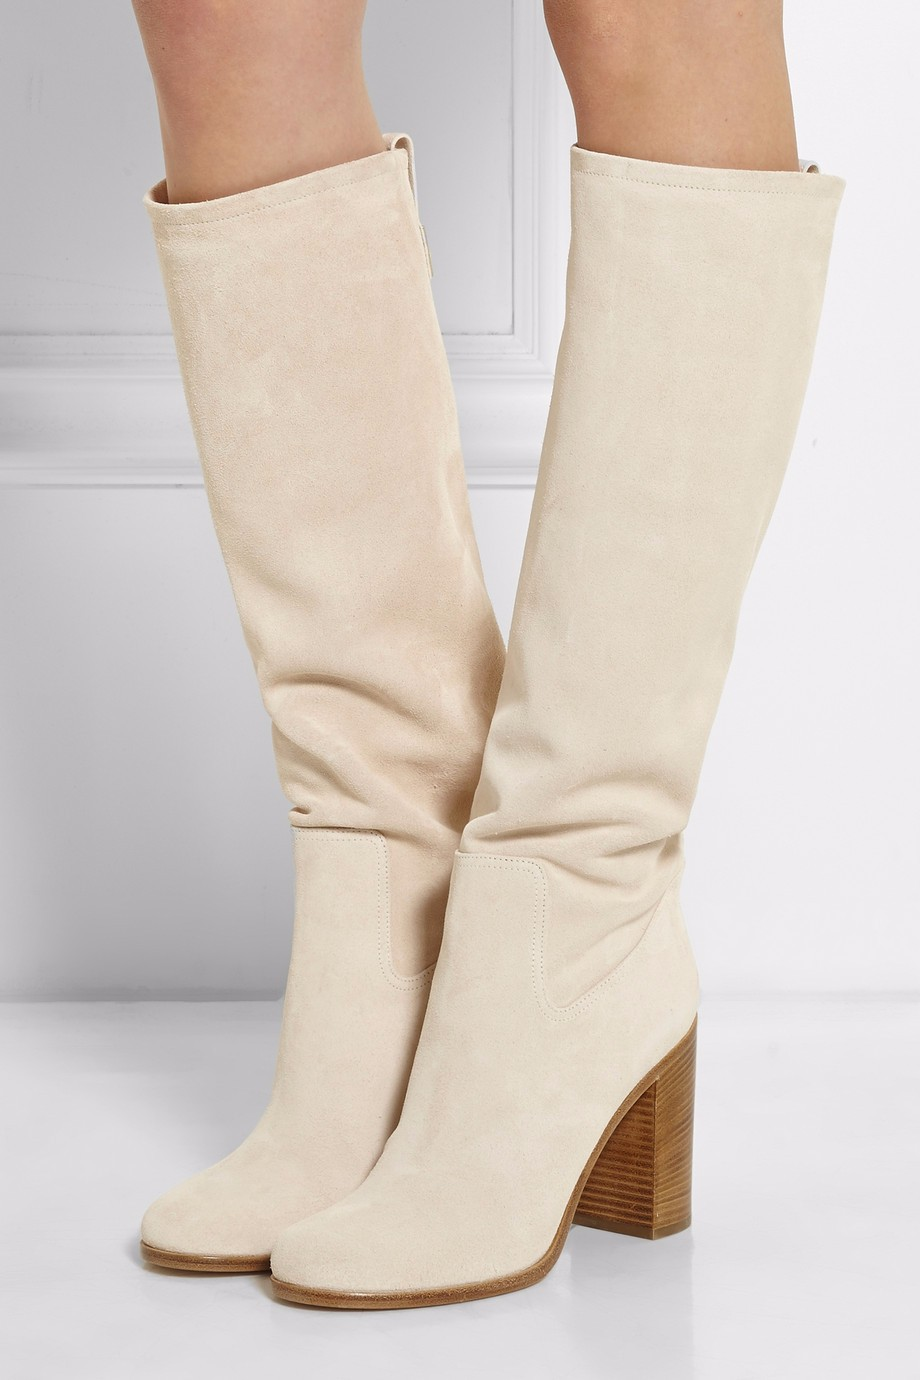 Gullick Beige Fabric Women Boot Round toe Chunky Heel Slip-on Knee-high Women Winter Long Boots Runway Dress Shoes Real Photo